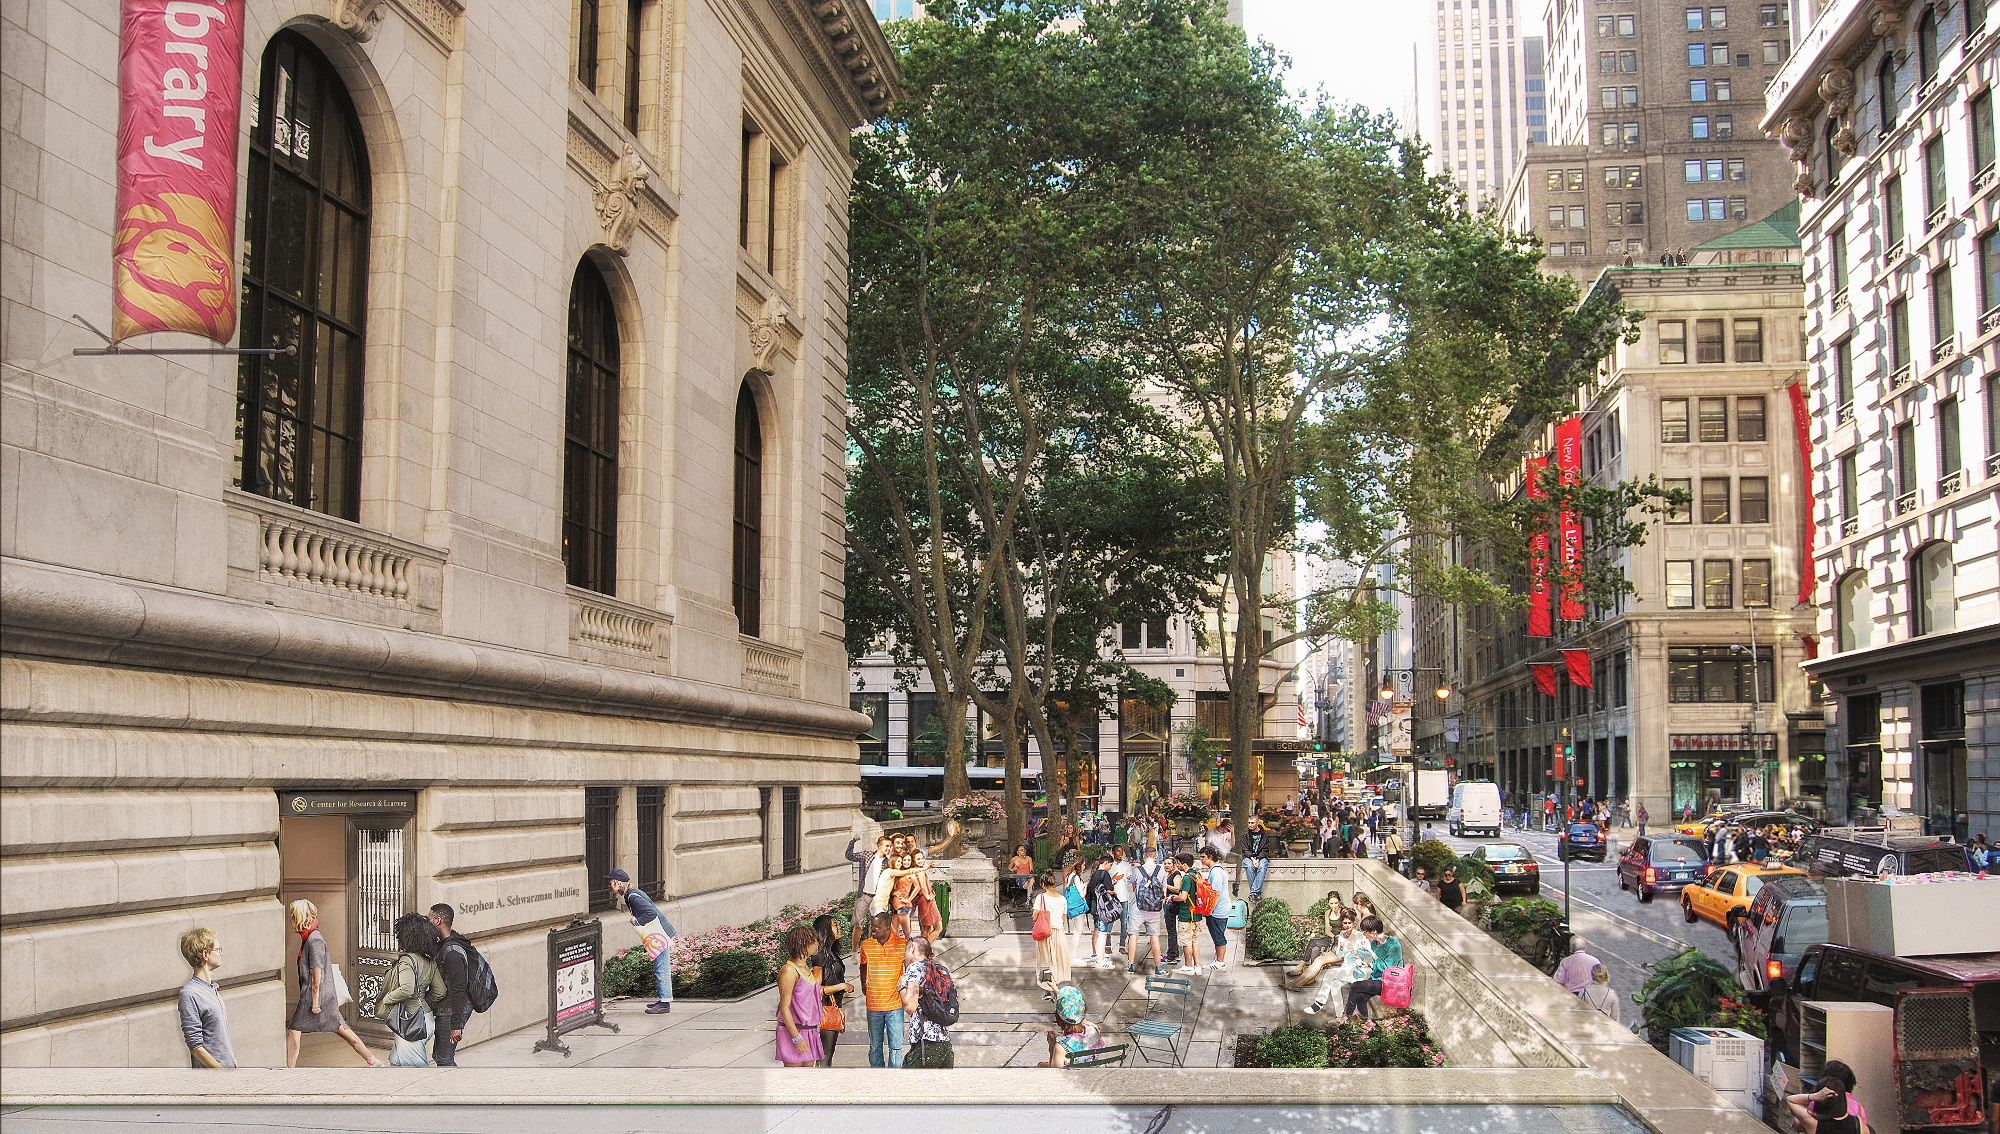 The renovations will cost $317 million and are part of ongoing investments in the New York Public Library.